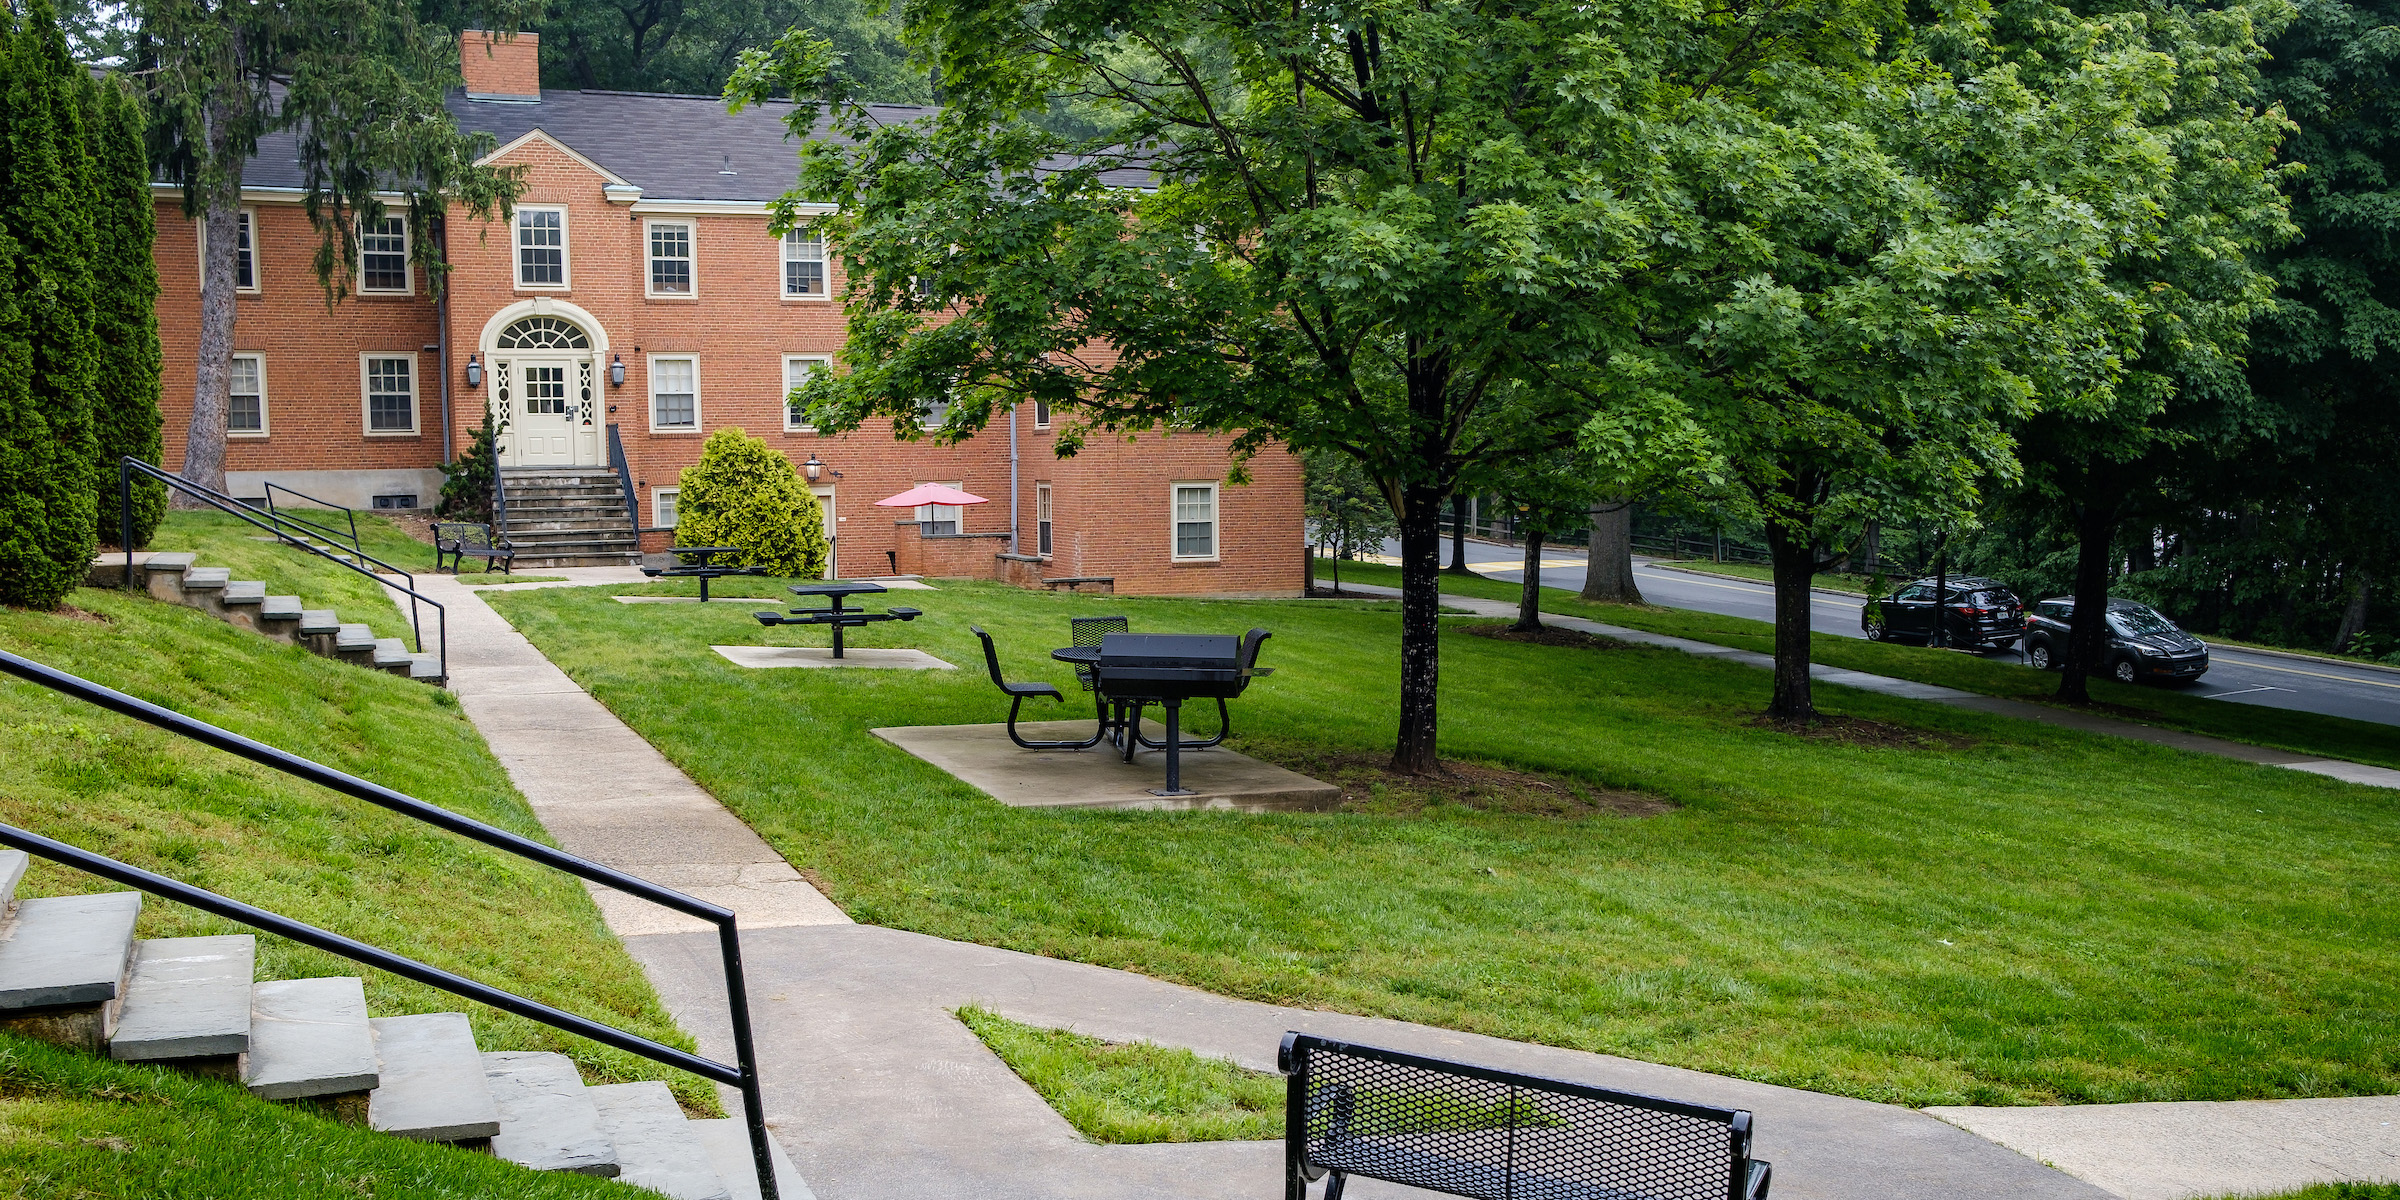 Courtyard between several North Campus Apartment buildings